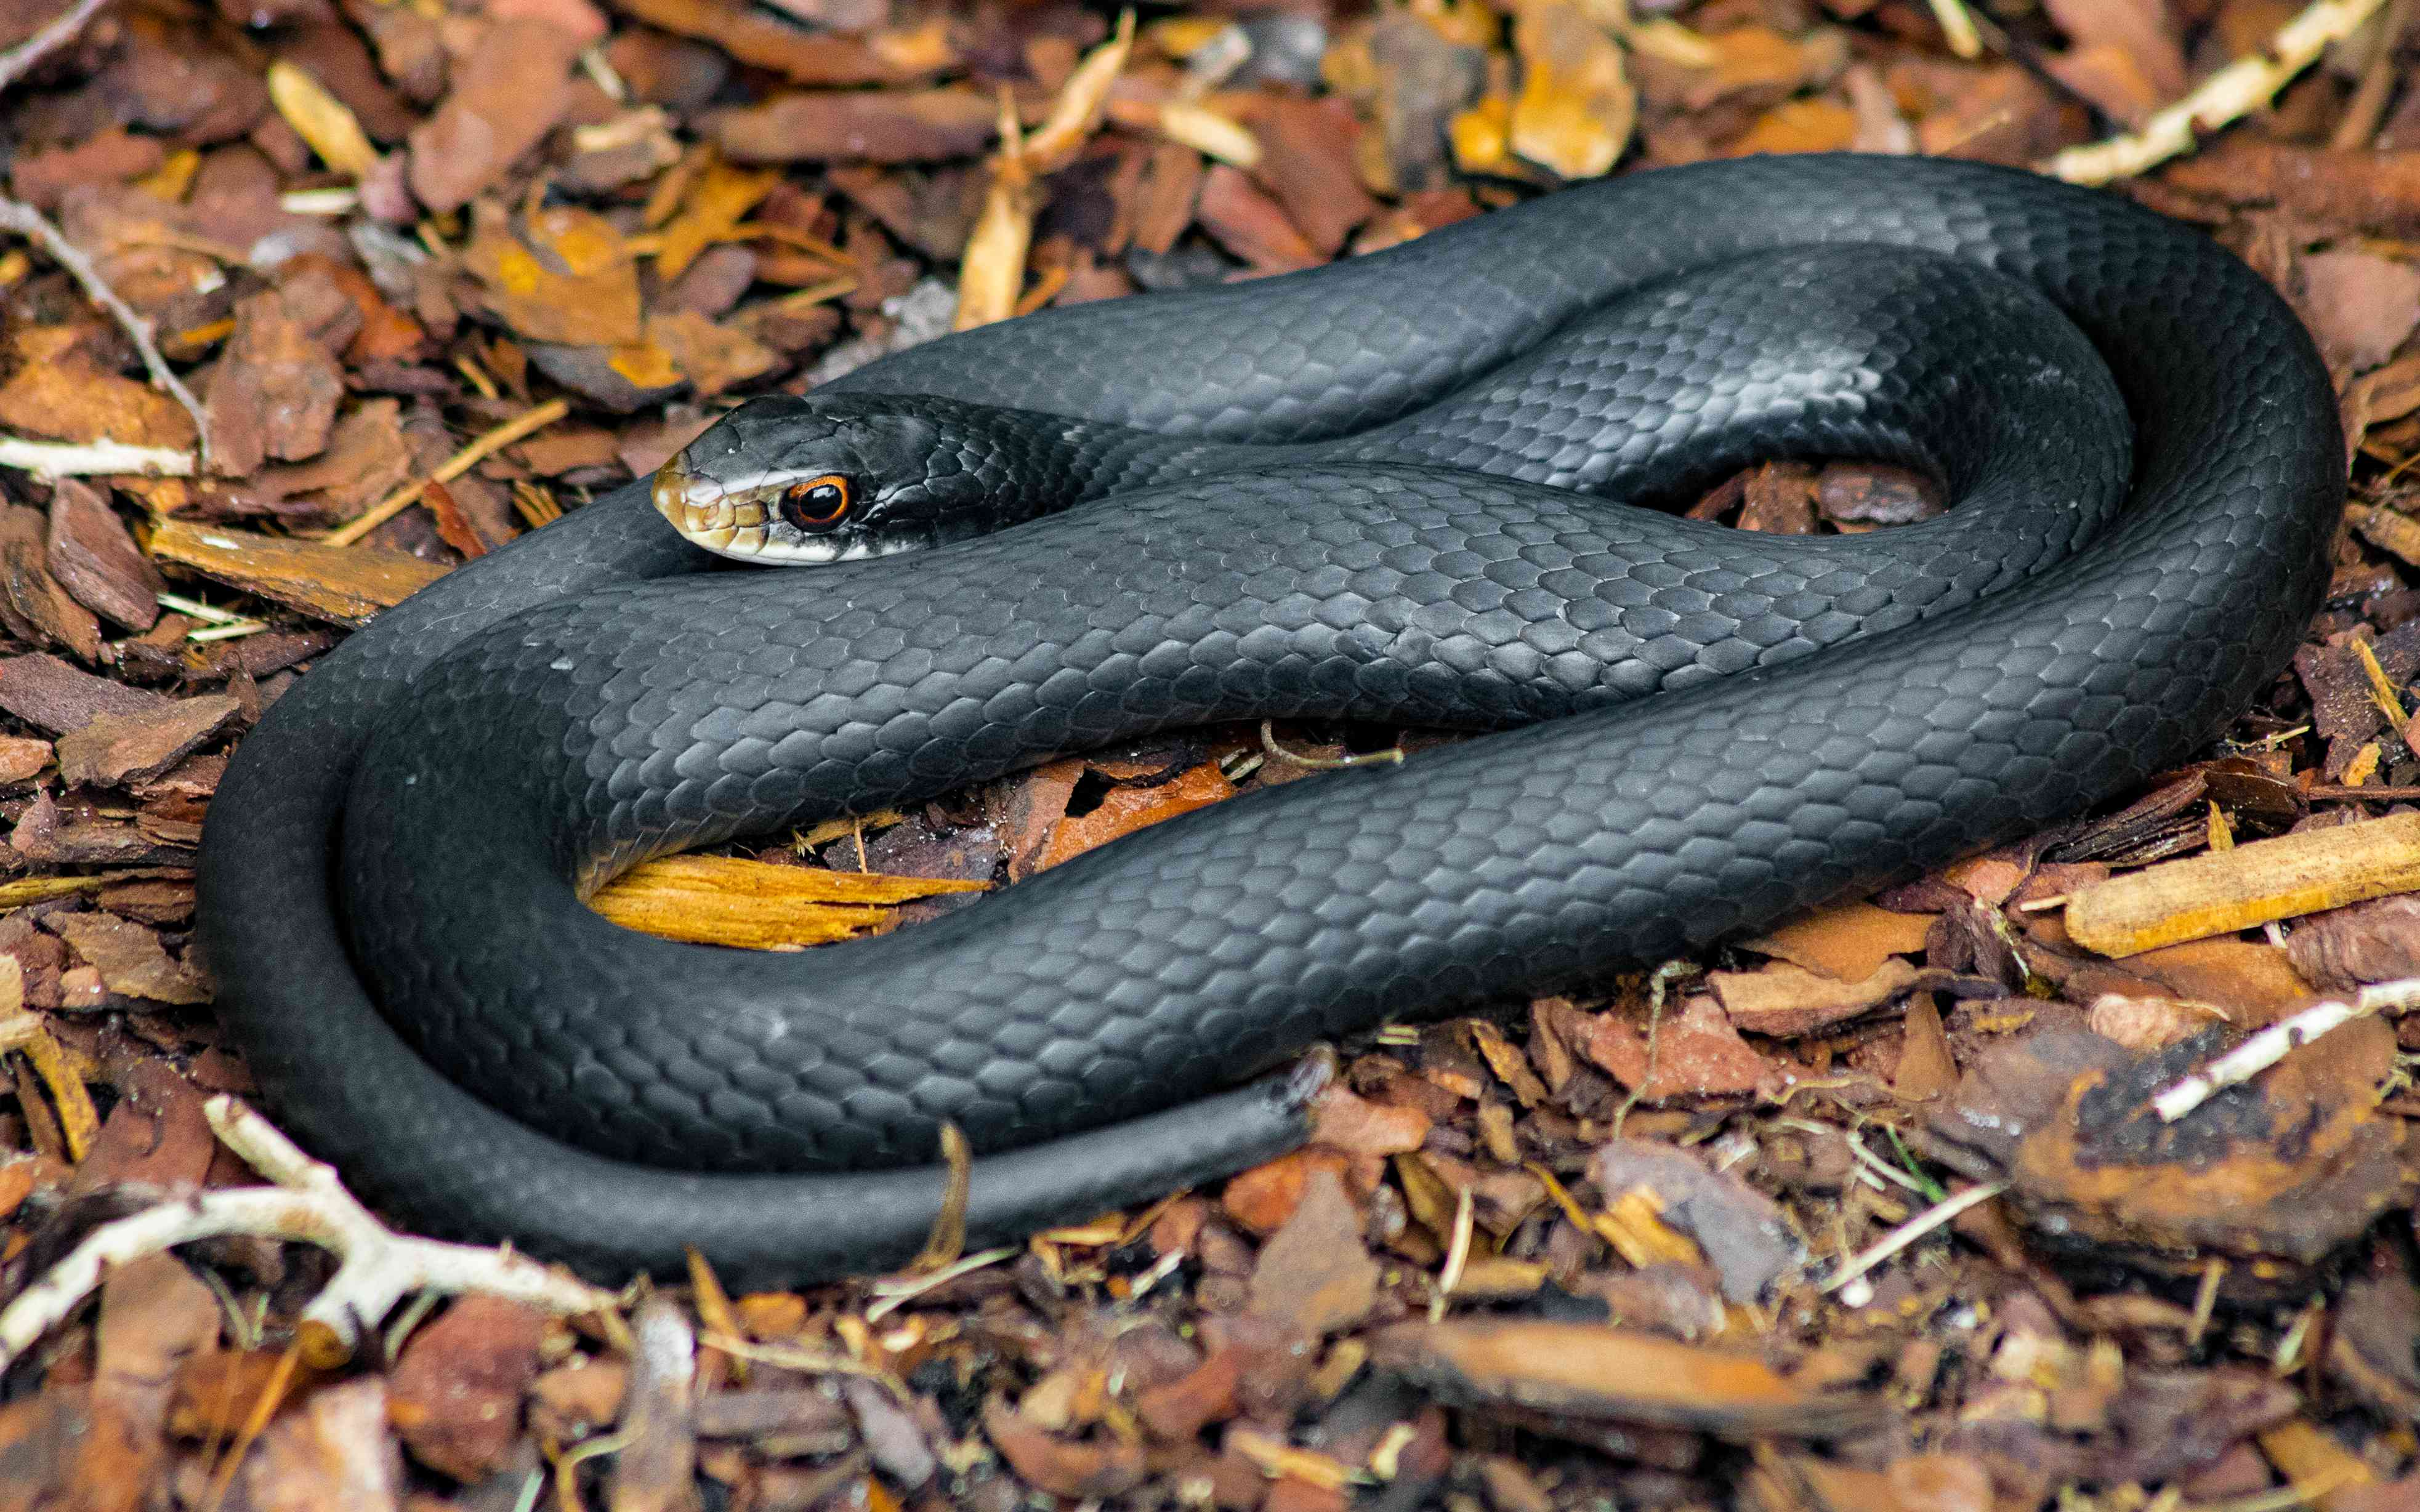 Black racer snake curled up on some mulch